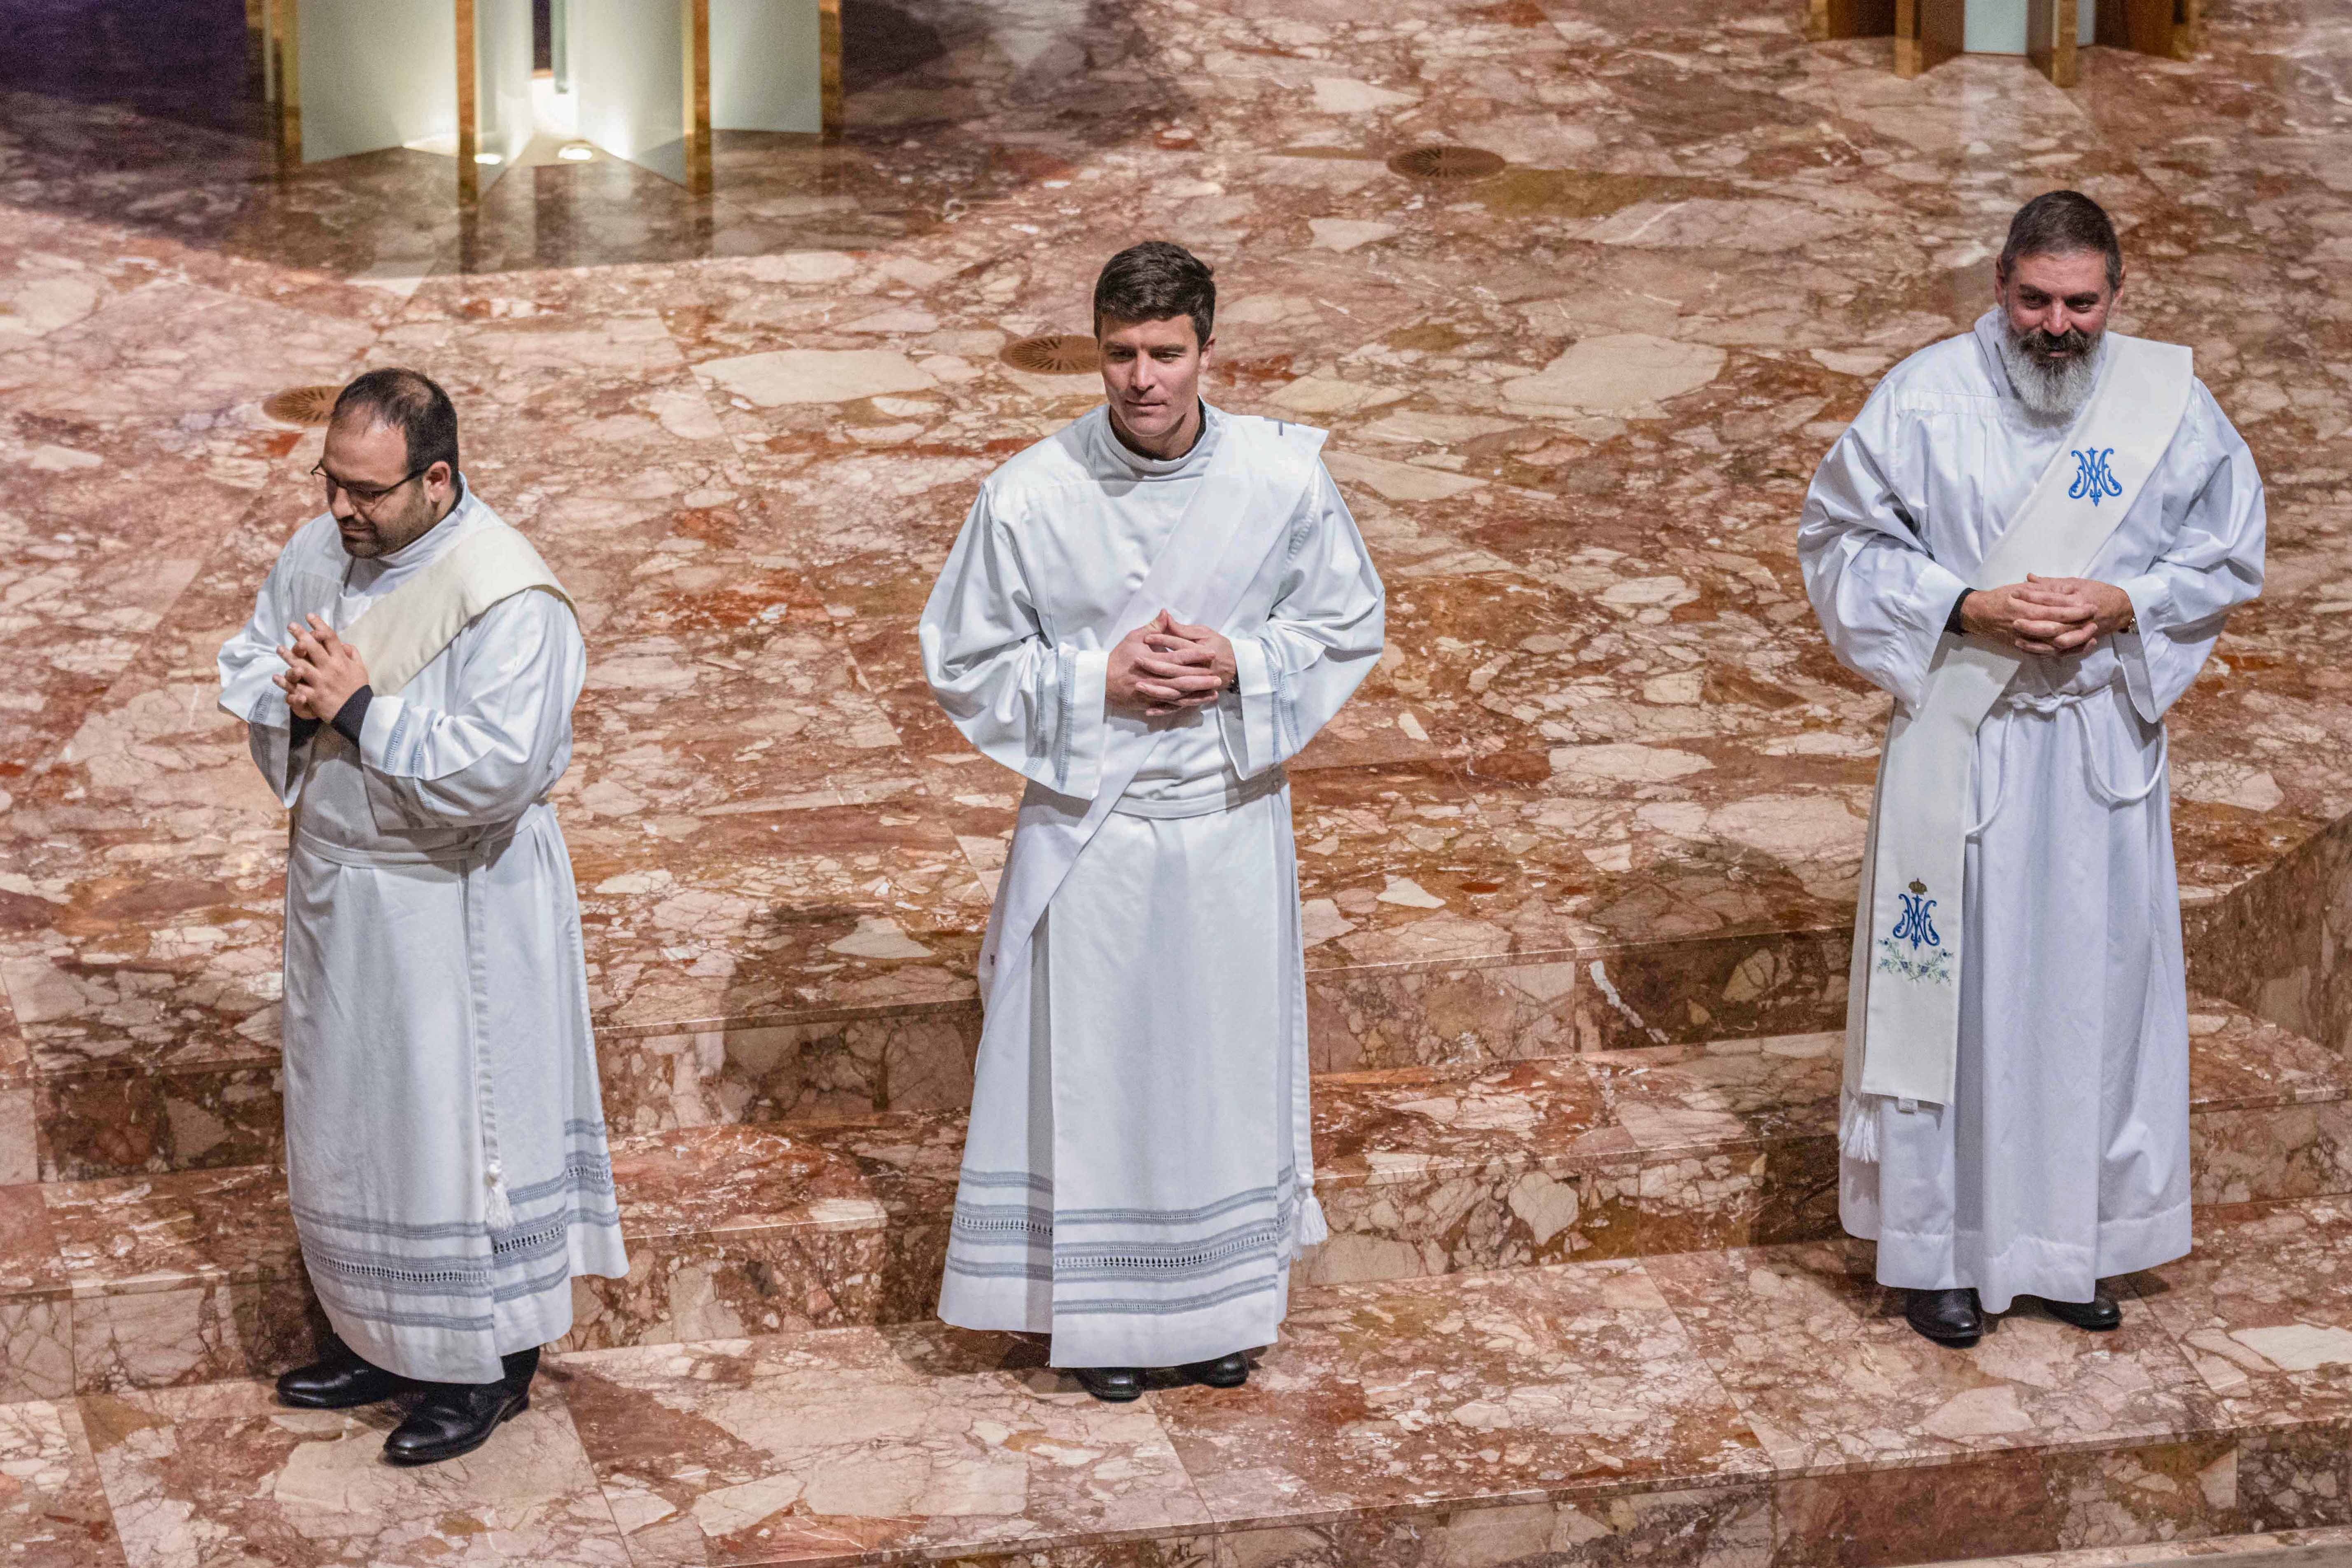 Fr Matteo Verdi, Fr Liam Ryan, and Fr Mark Rucci during their Ordination to the Priesthood on 16 August at St Mary's Cathedral. Photo: Matthew Lau.